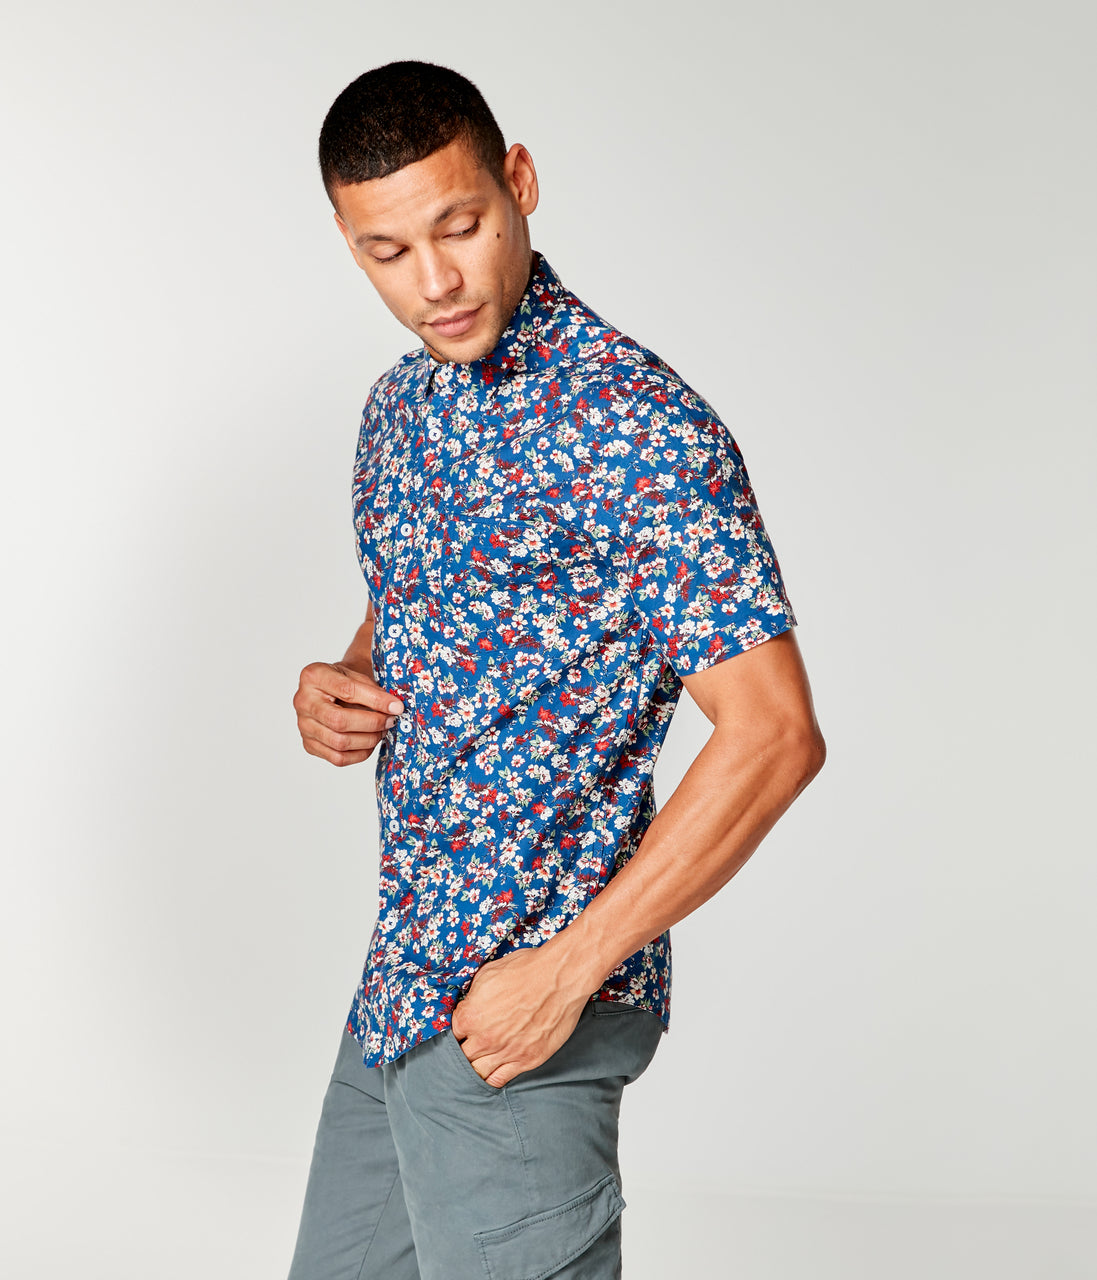 Woven On-Point Shirt - Indigo Hana Road Floral - Good Man Brand - On-Point Print Shirt Short Sleeve - Indigo Hana Road Floral